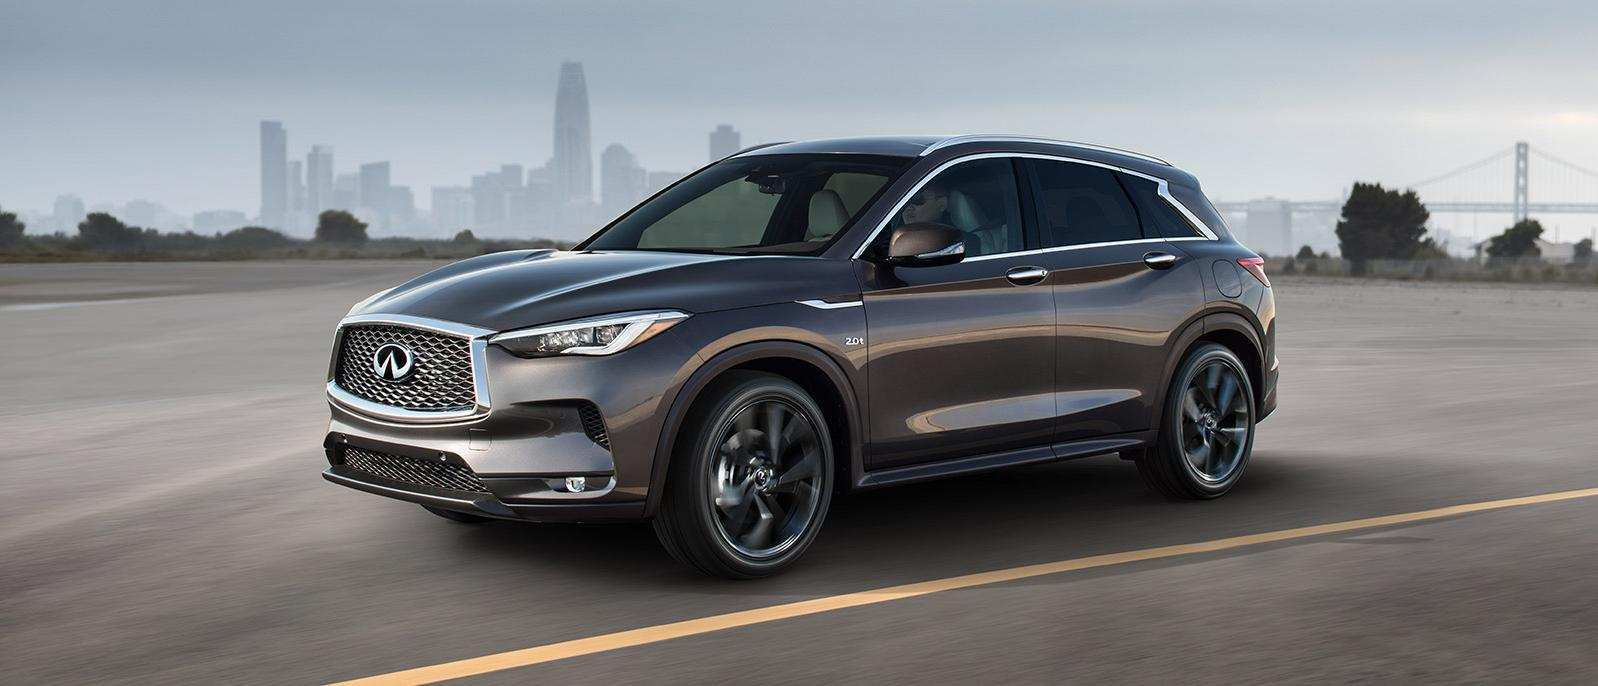 21 Best 2019 Infiniti Lineup Specs And Review